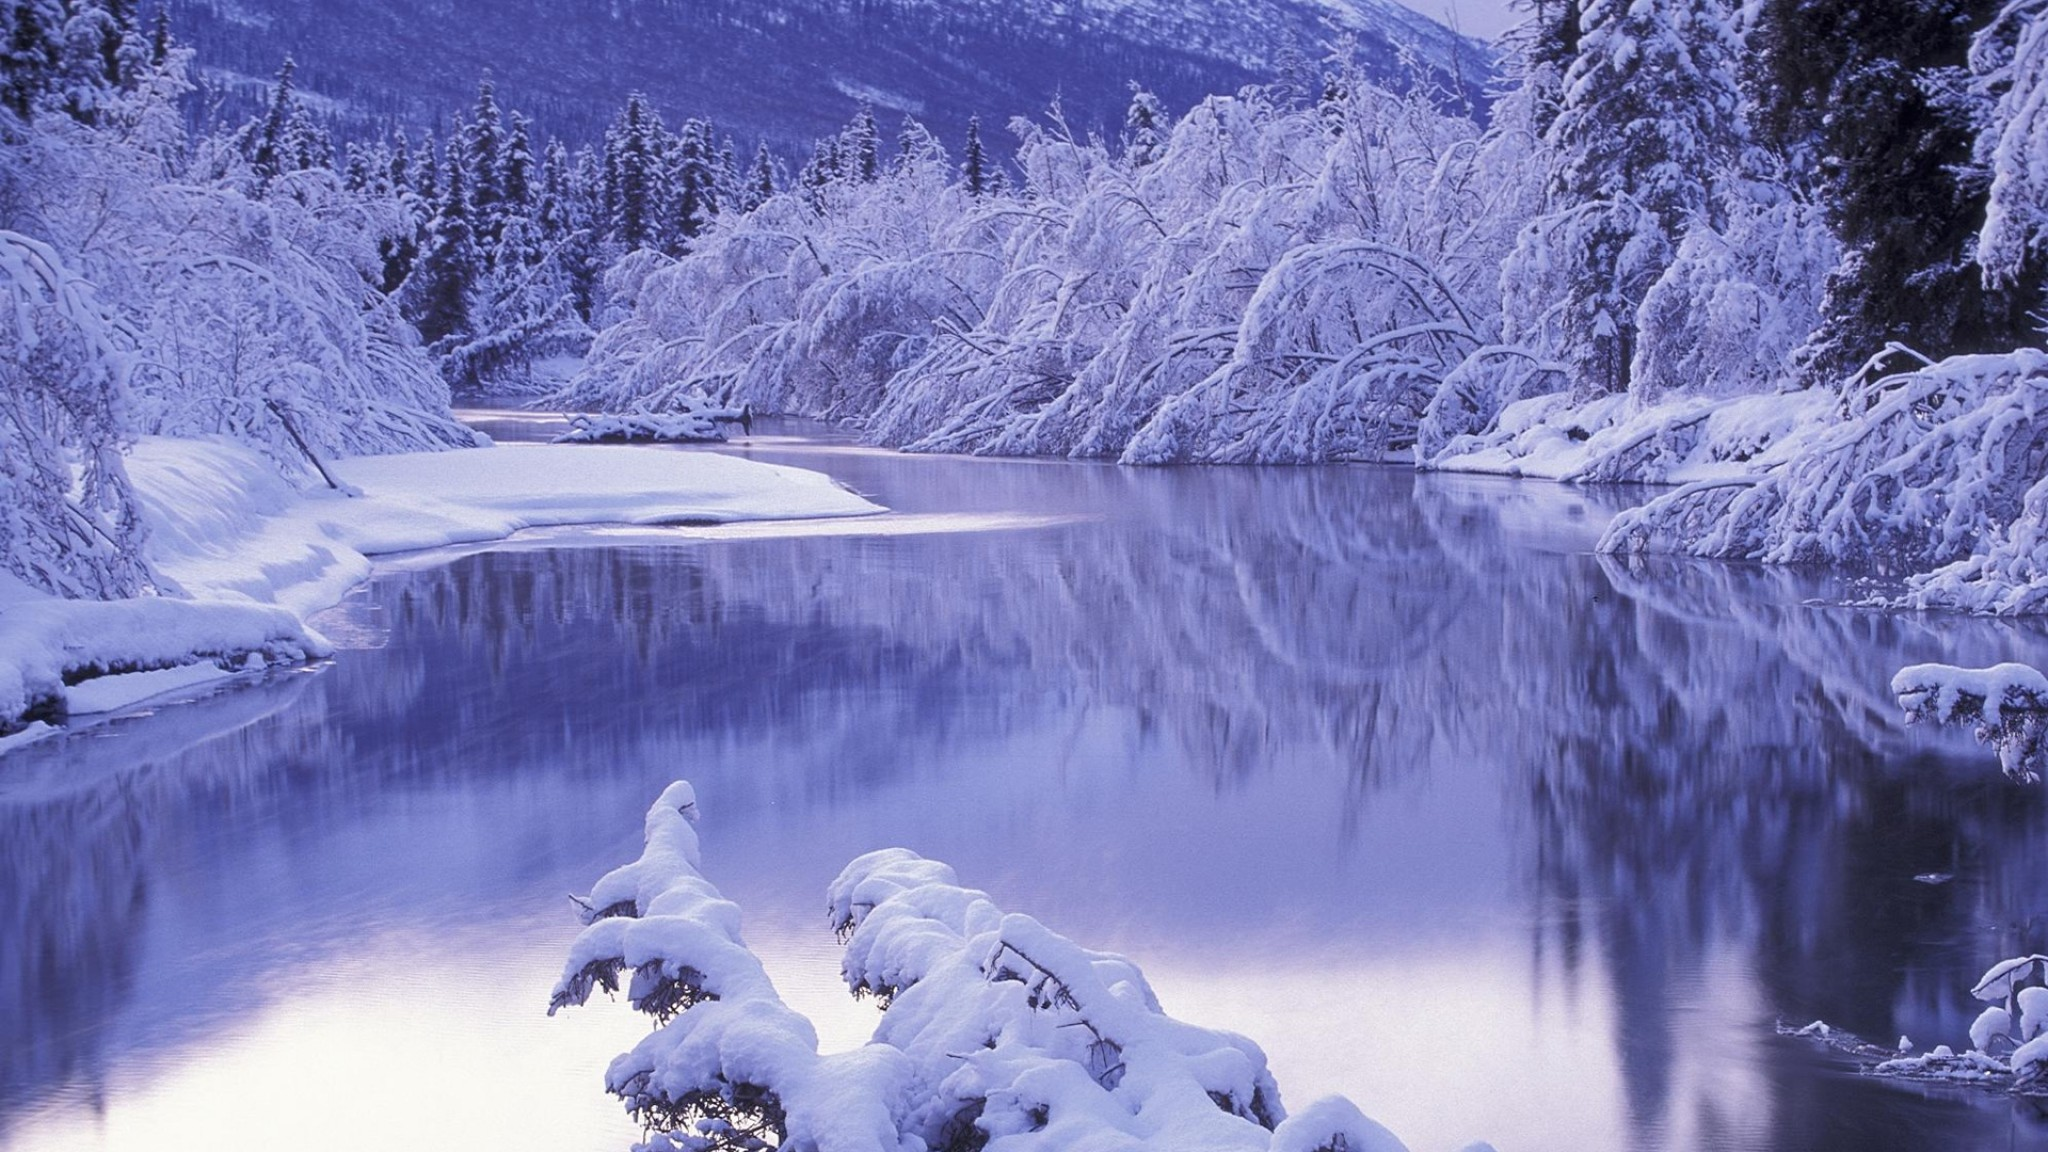 2048x1152 Preview wallpaper snow, white, winter, nature, scenery